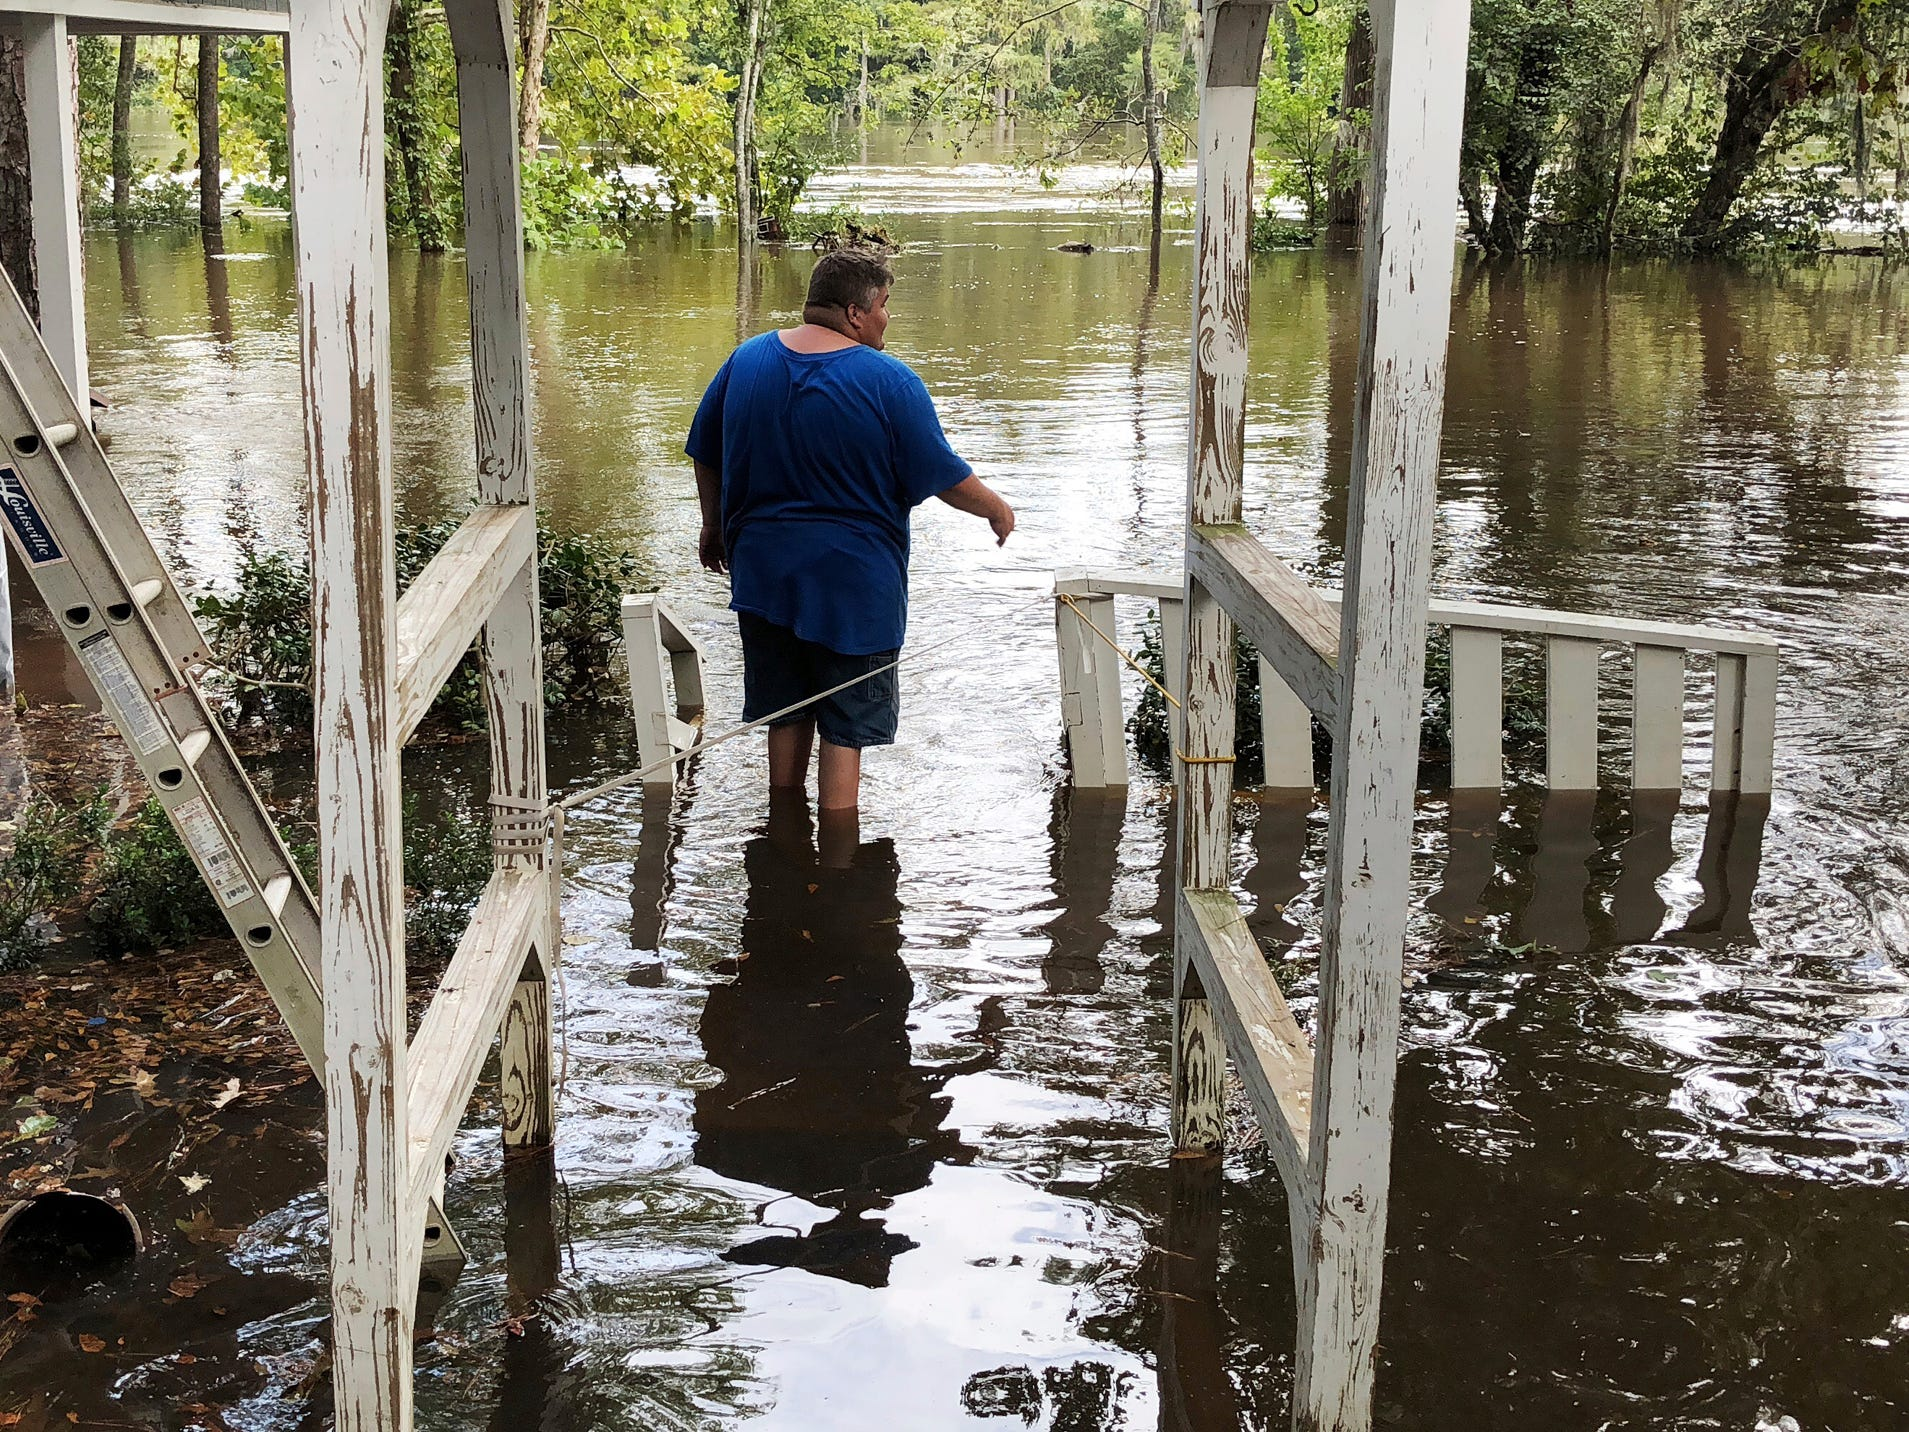 Shawn Lowrimore wades into the water near The Fellowship With Jesus Ministries church in Yauhannah, S.C., on Monday, Sept. 24, 2018. The church is on the bank of the Waccamaw River which has already risen above its record crest and is expected to keep rising for several days, forcing thousands of evacuations in the aftermath of Hurricane Florence.